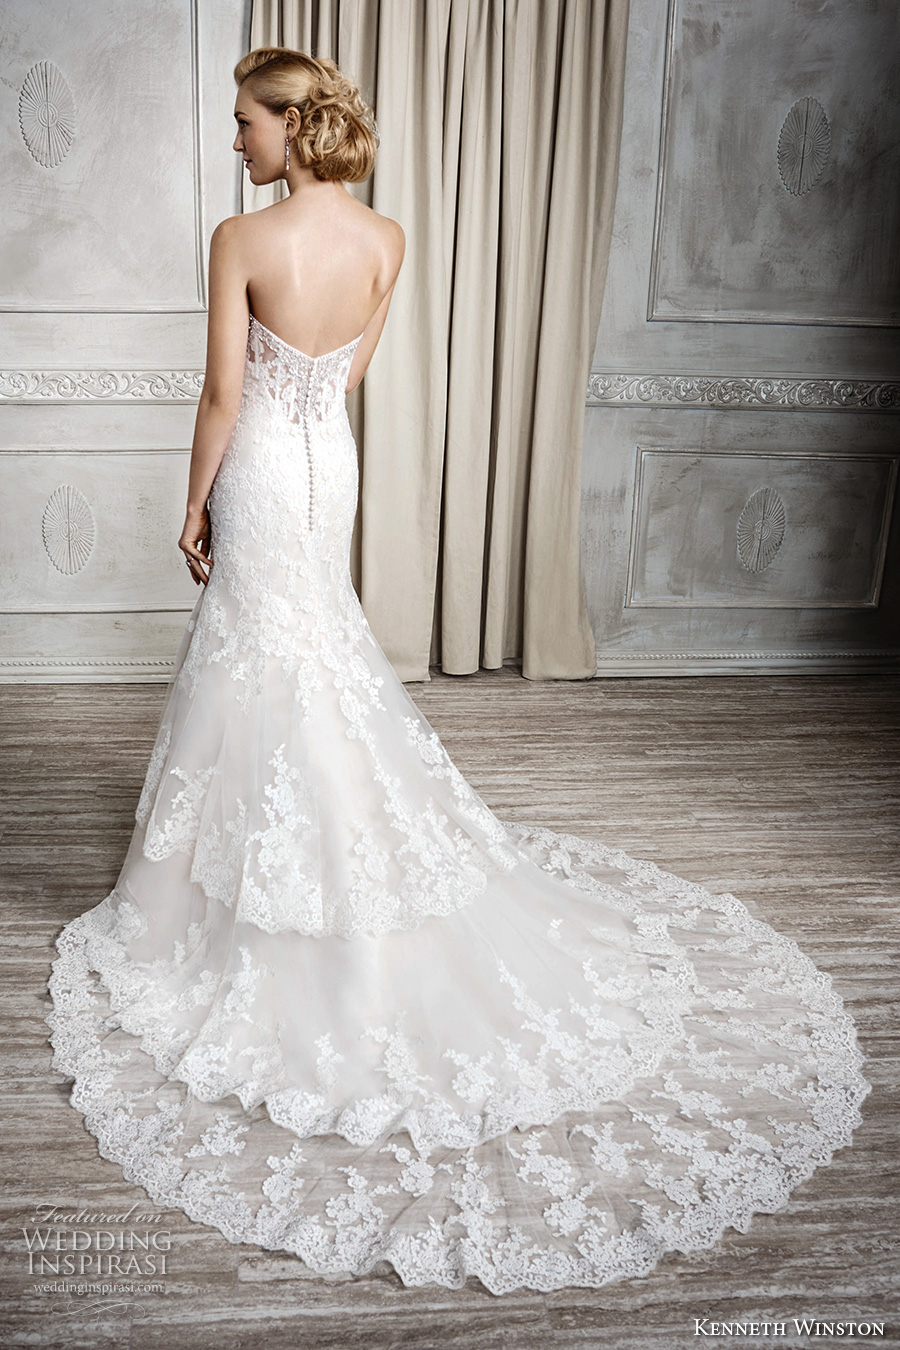 Kenneth Winston Fall 2016 Bridal Strapless Sweetheart Neckline Full Embellishment Elegant Fit And Flare Wedding Dress